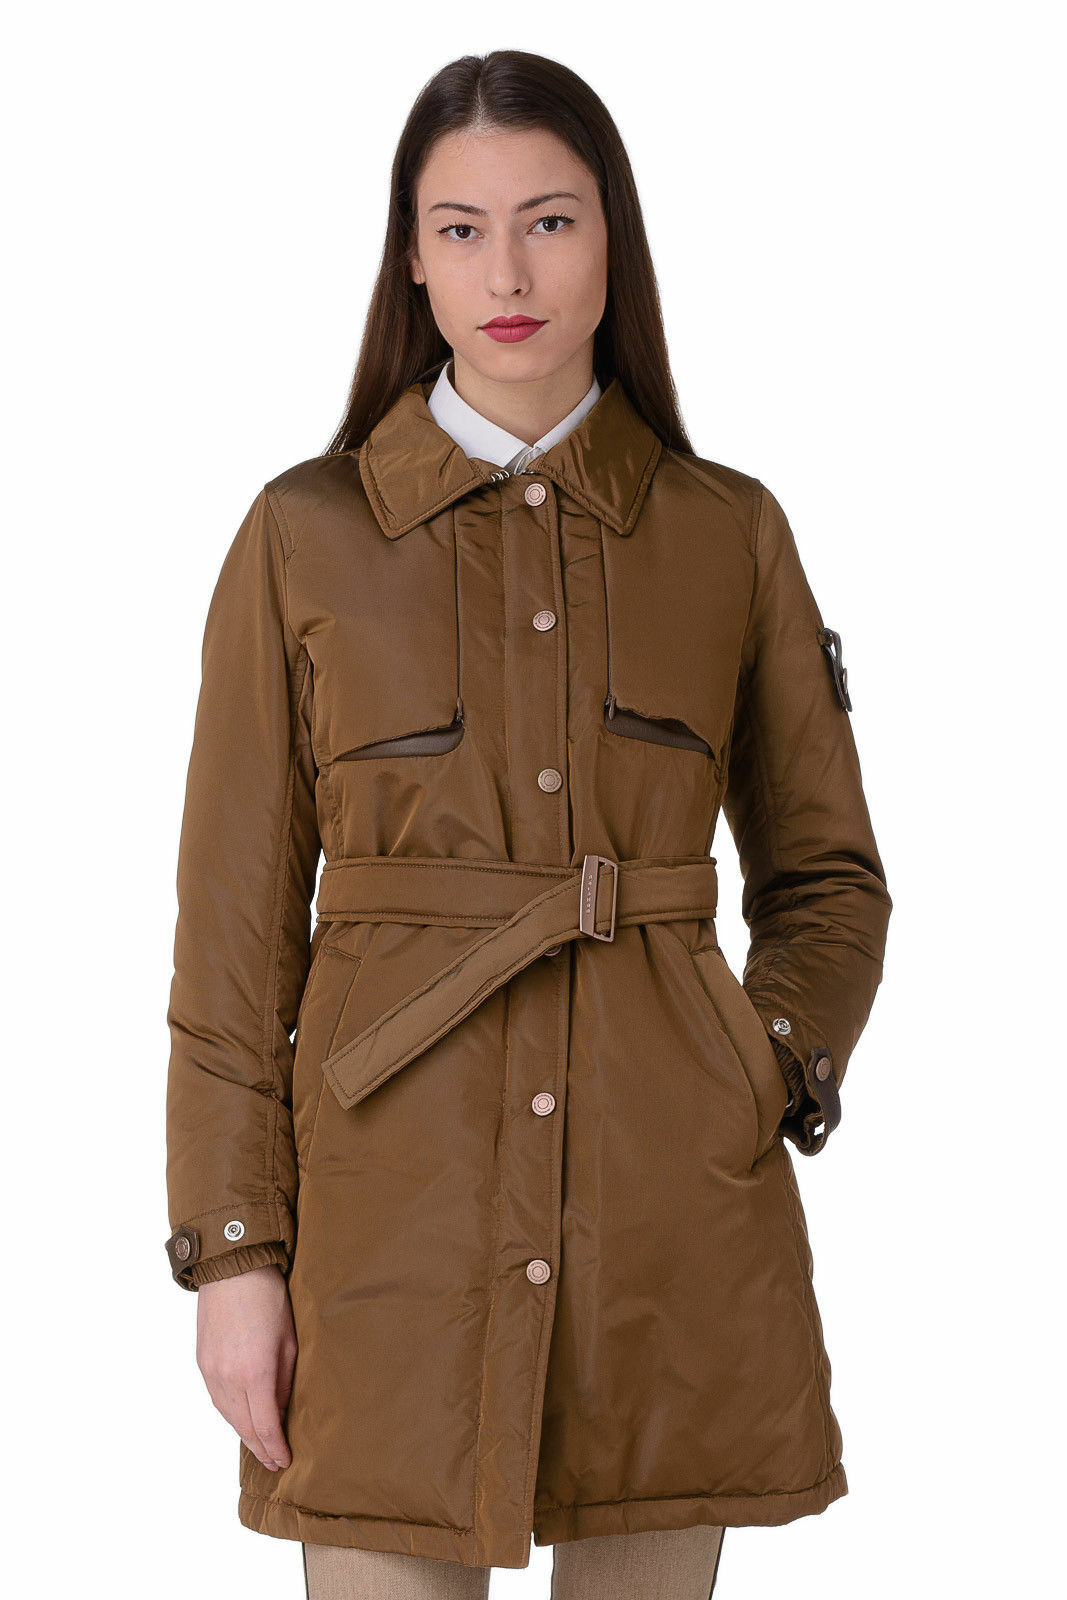 PIQUADRO Light Tech DOWN PROOF Padded Belted Travel Trench Coat Size 40, 2 XS